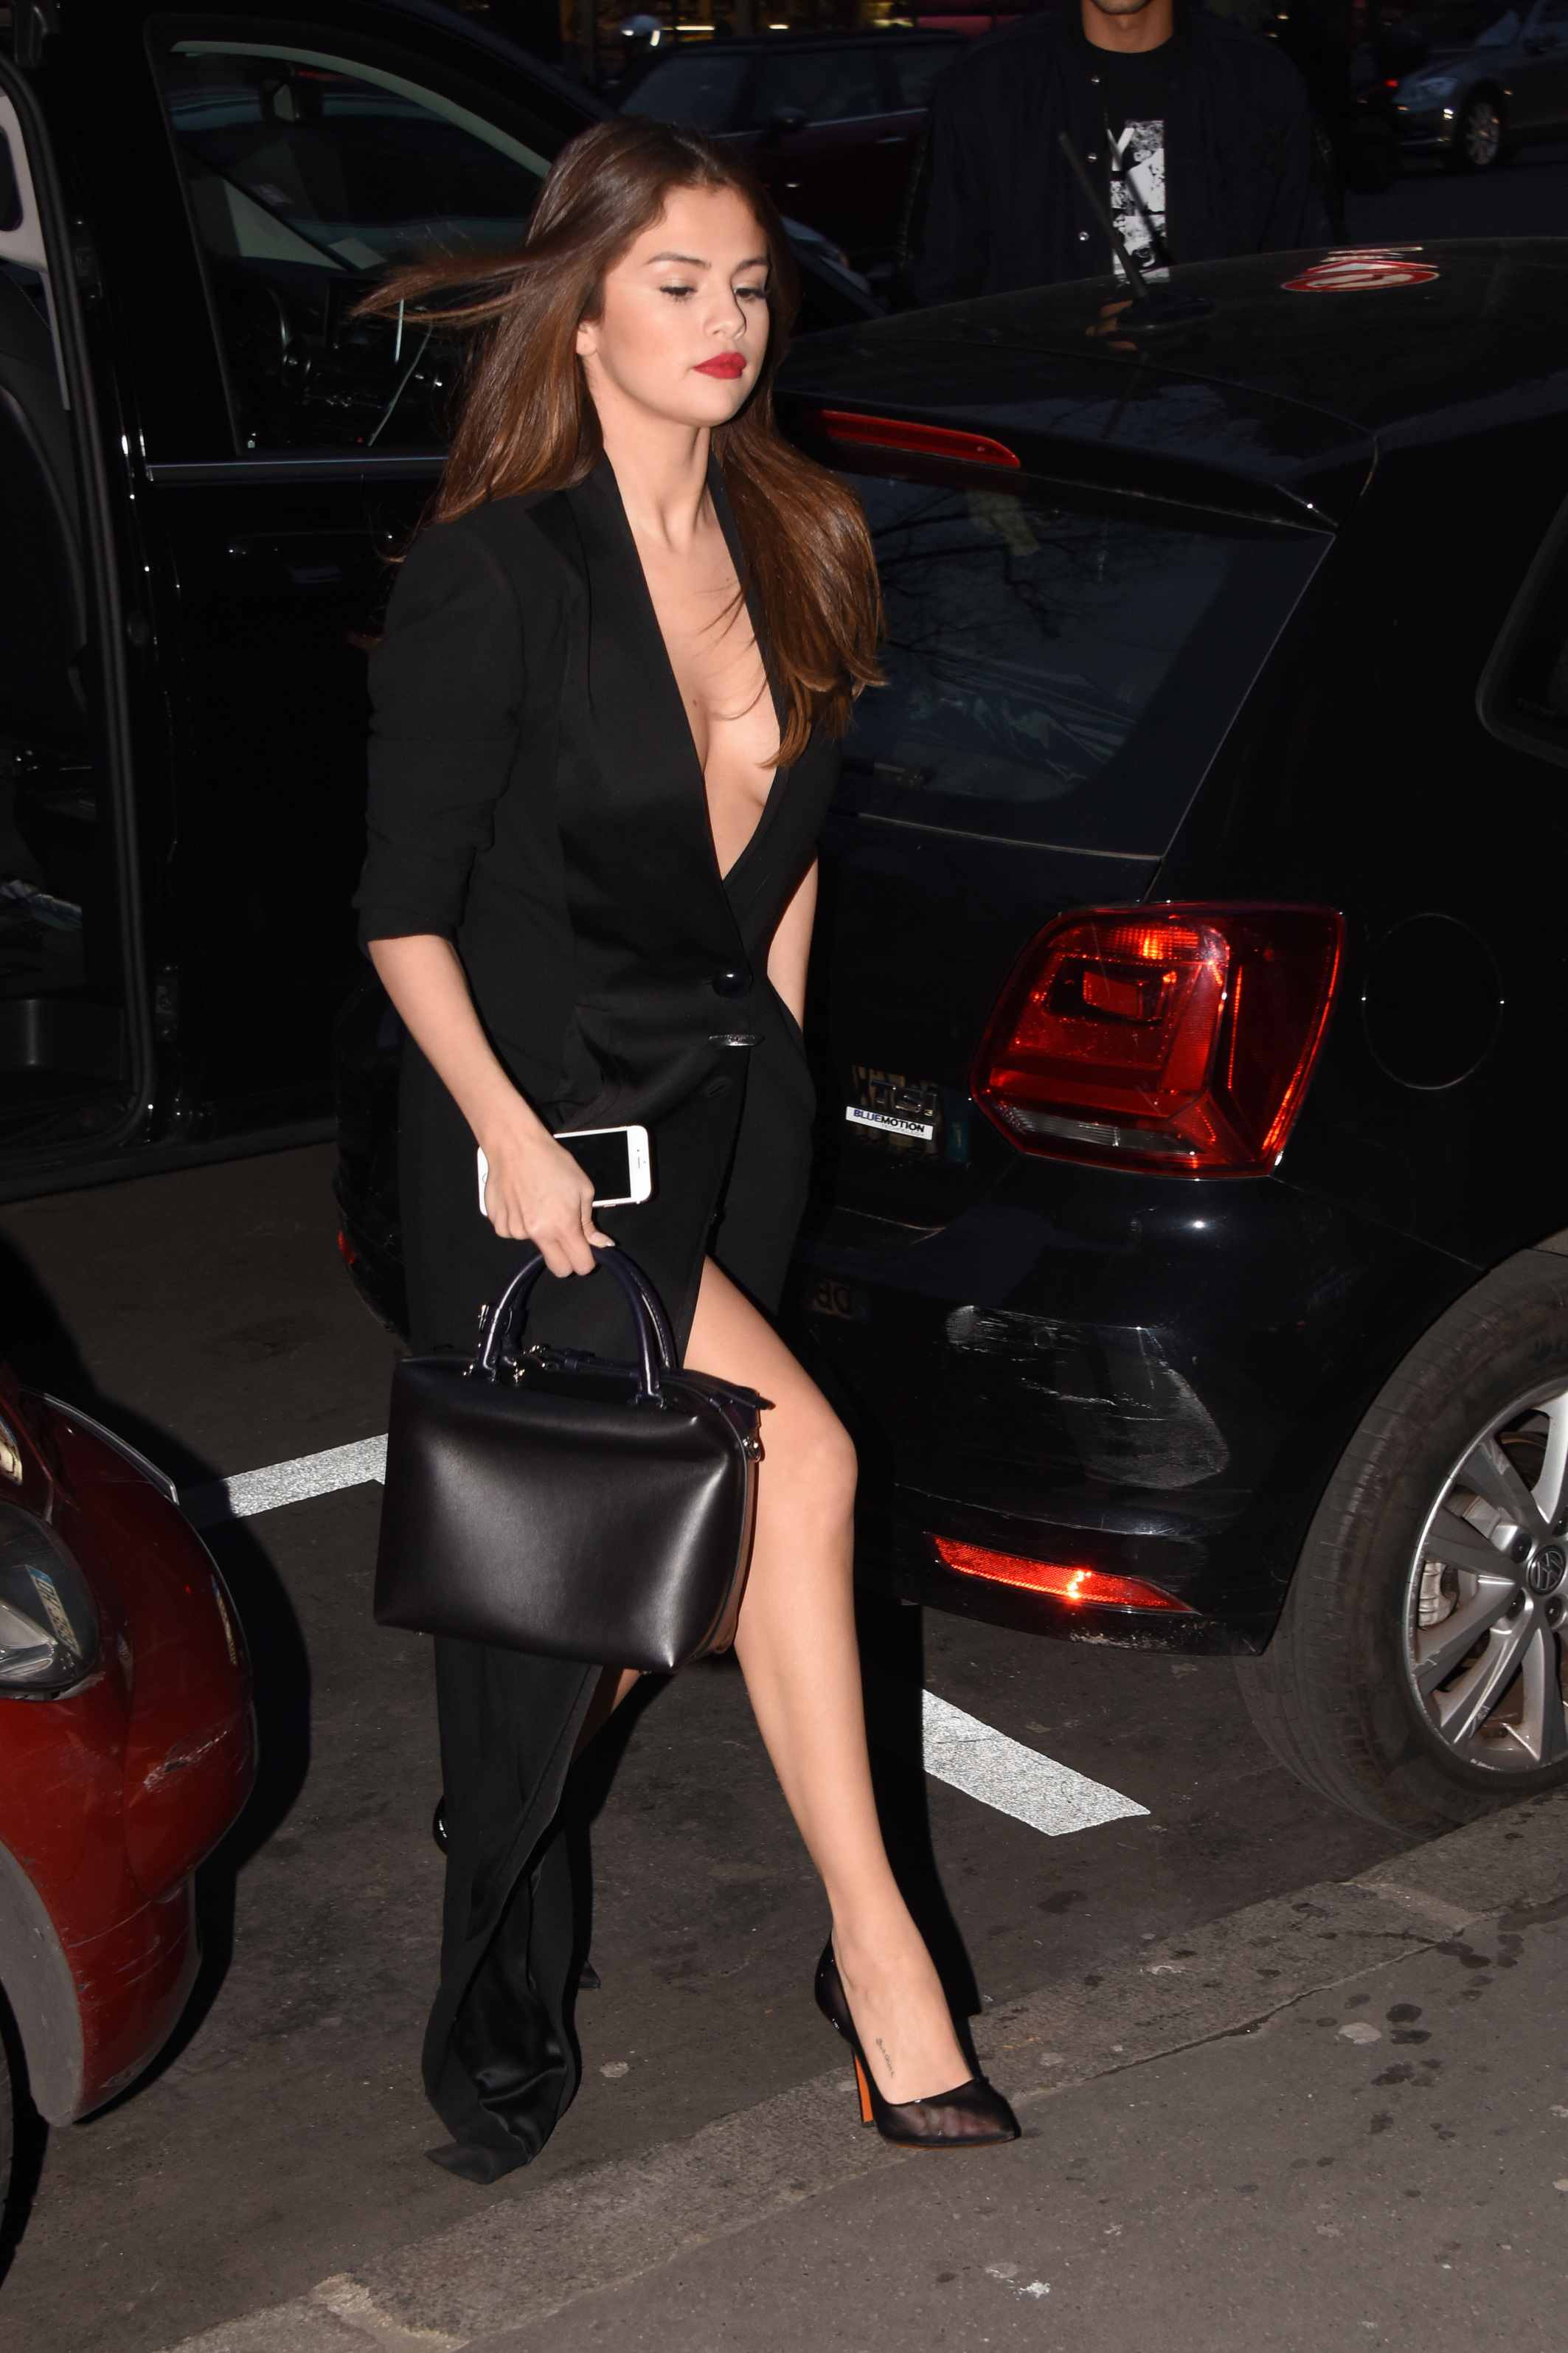 selena gomez cleavage and upskirt in paris 03 celebrity. Black Bedroom Furniture Sets. Home Design Ideas